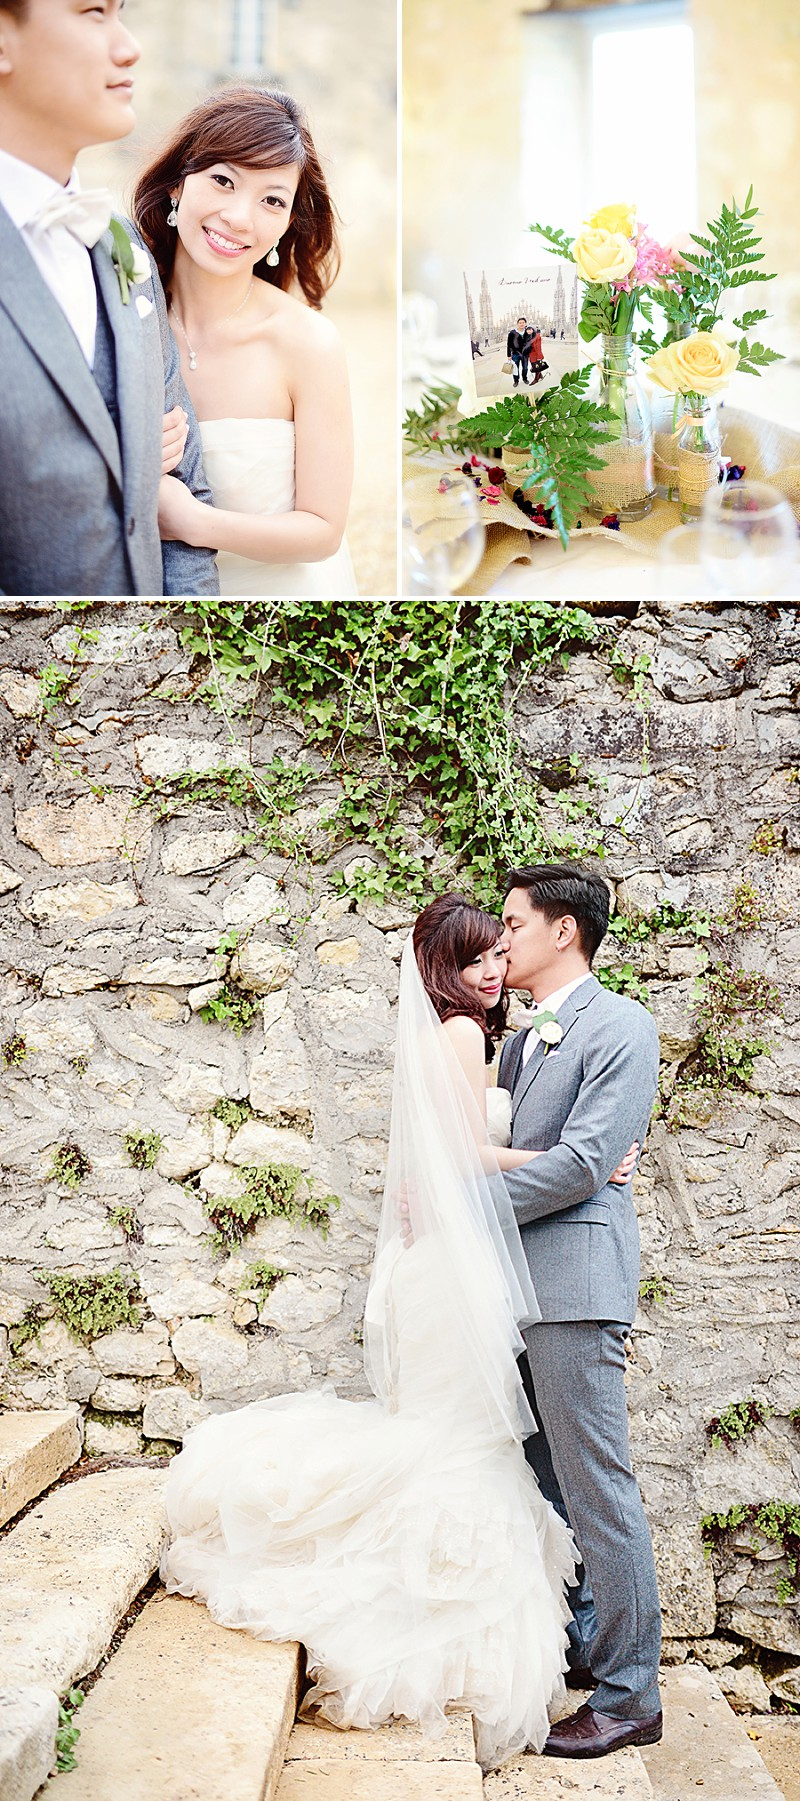 A Destination French Wedding At Chateau Lagorce In Bordeaux With A Vera Wang 'Gemma' Wedding Dress And A Peach And Coral Colour Theme With Photography By Emm and Clau._0008